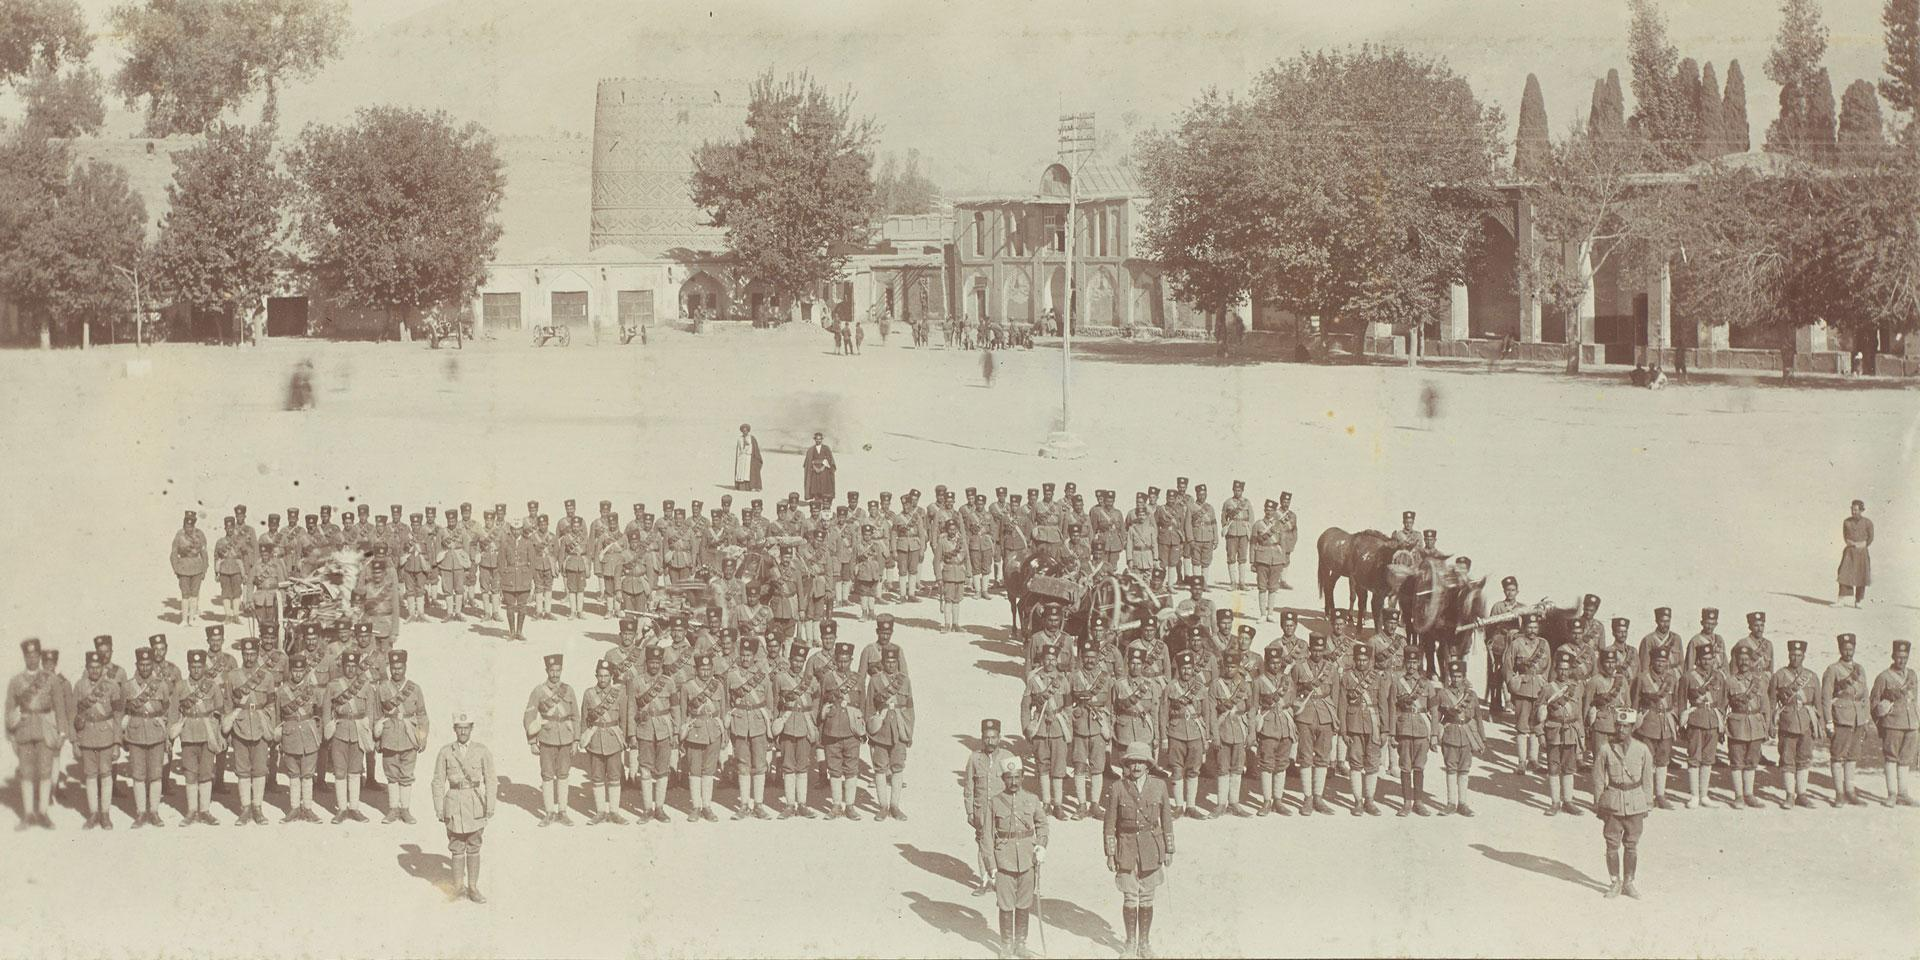 Parade of the South Persia Rifles, 1918